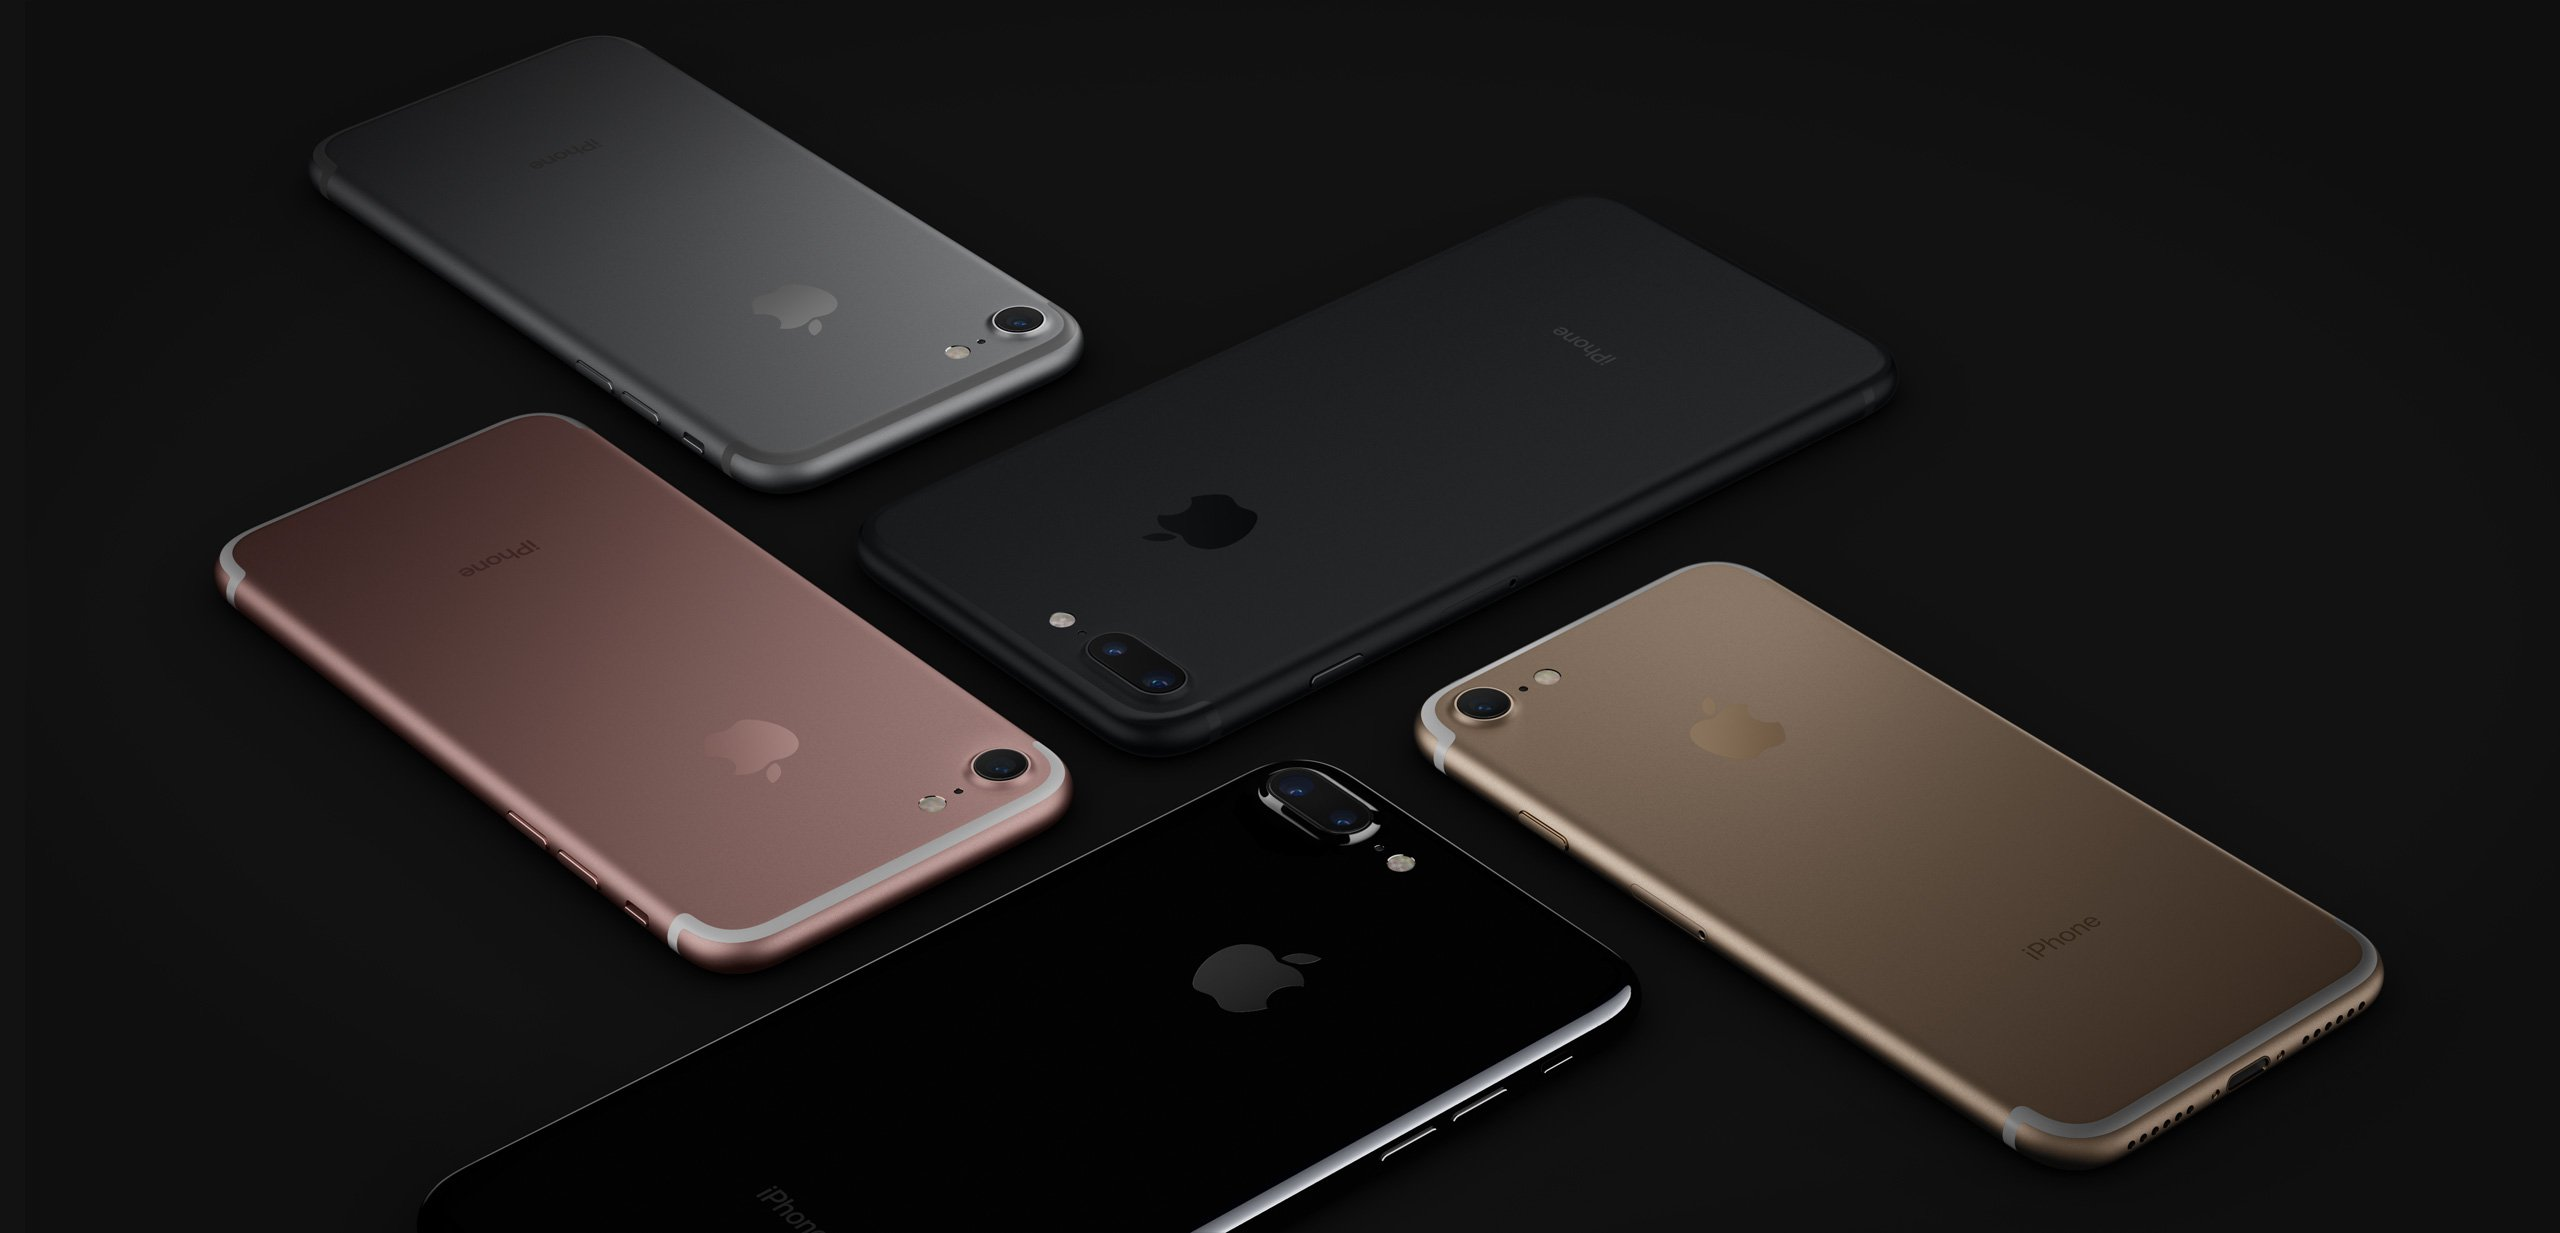 Samsung Spending 1 Billion To Sell The Iphone 7